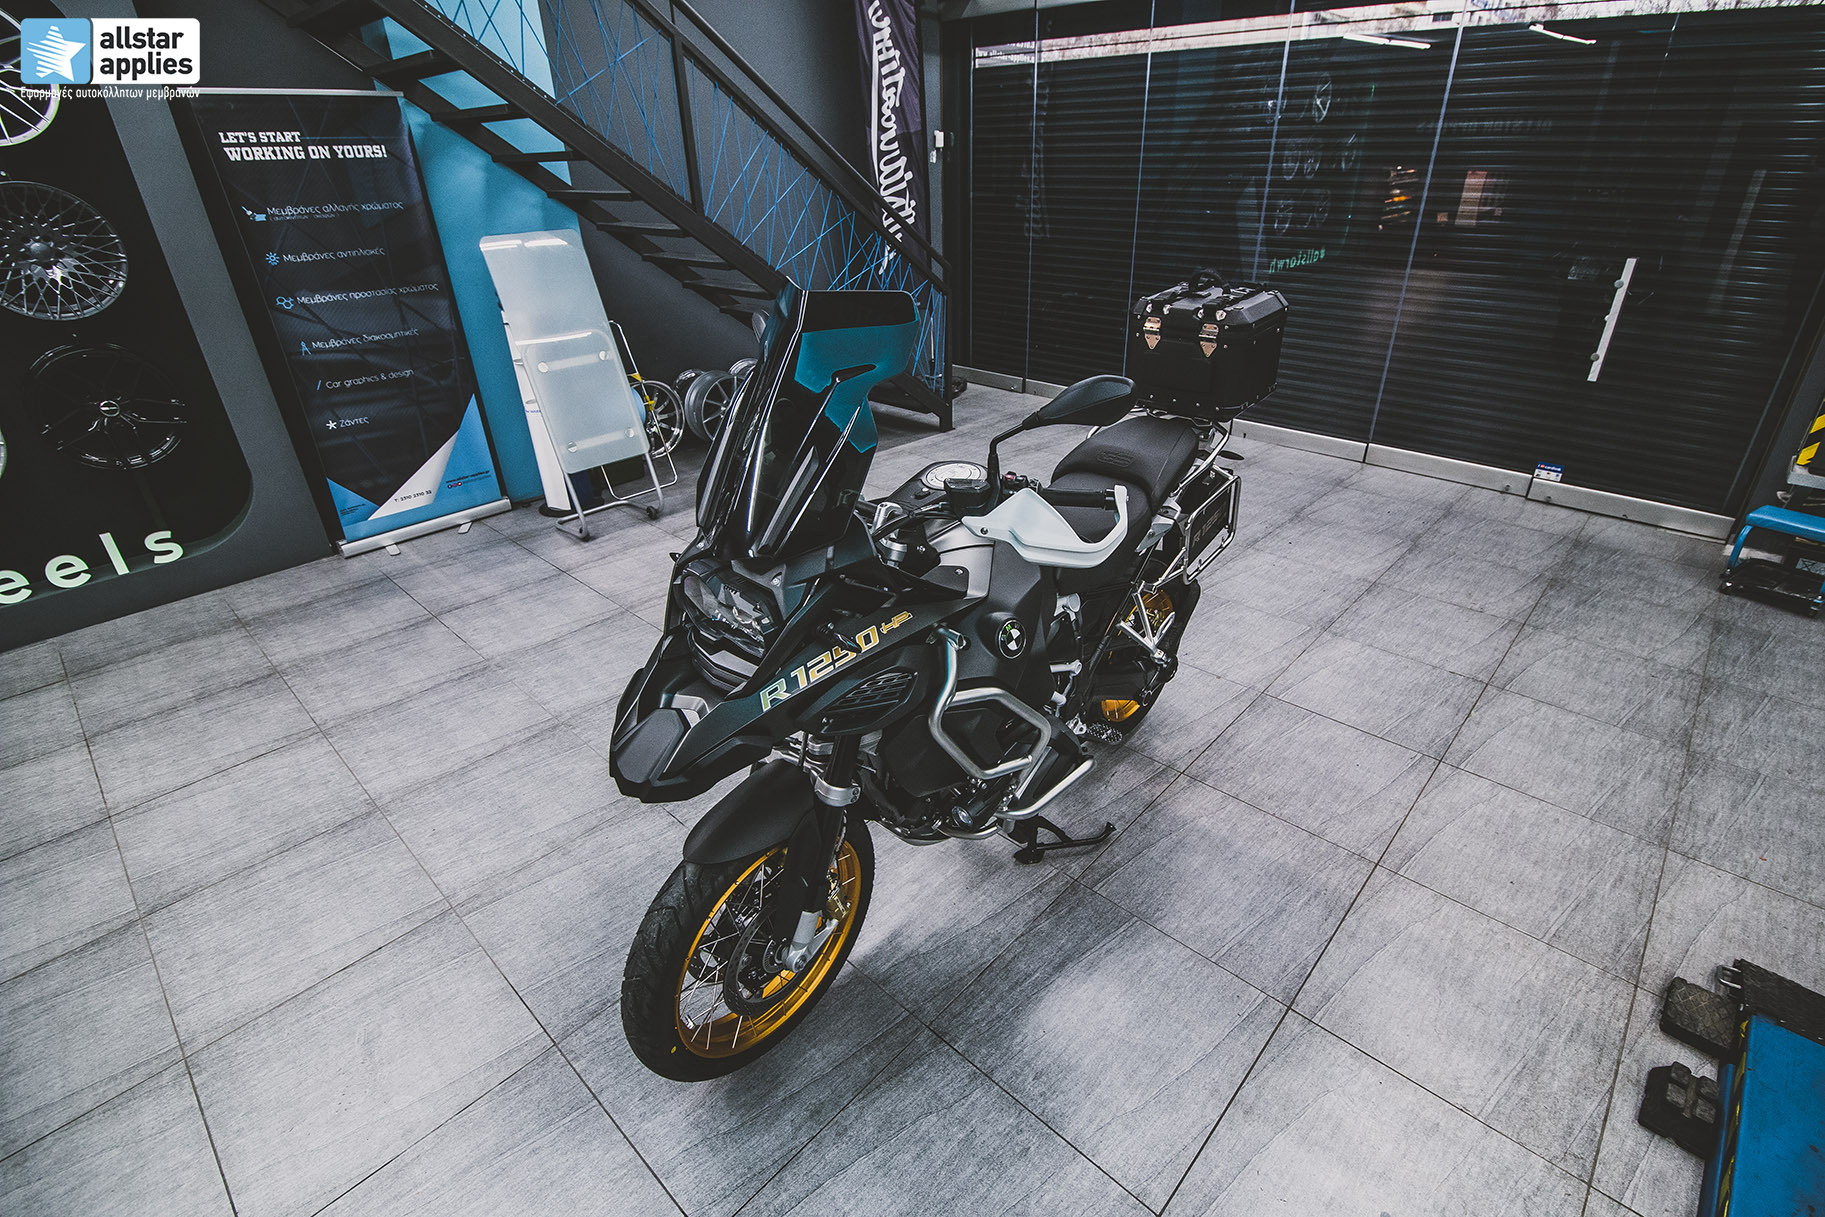 moto wrapping Bmw gs1250 Allstar applies